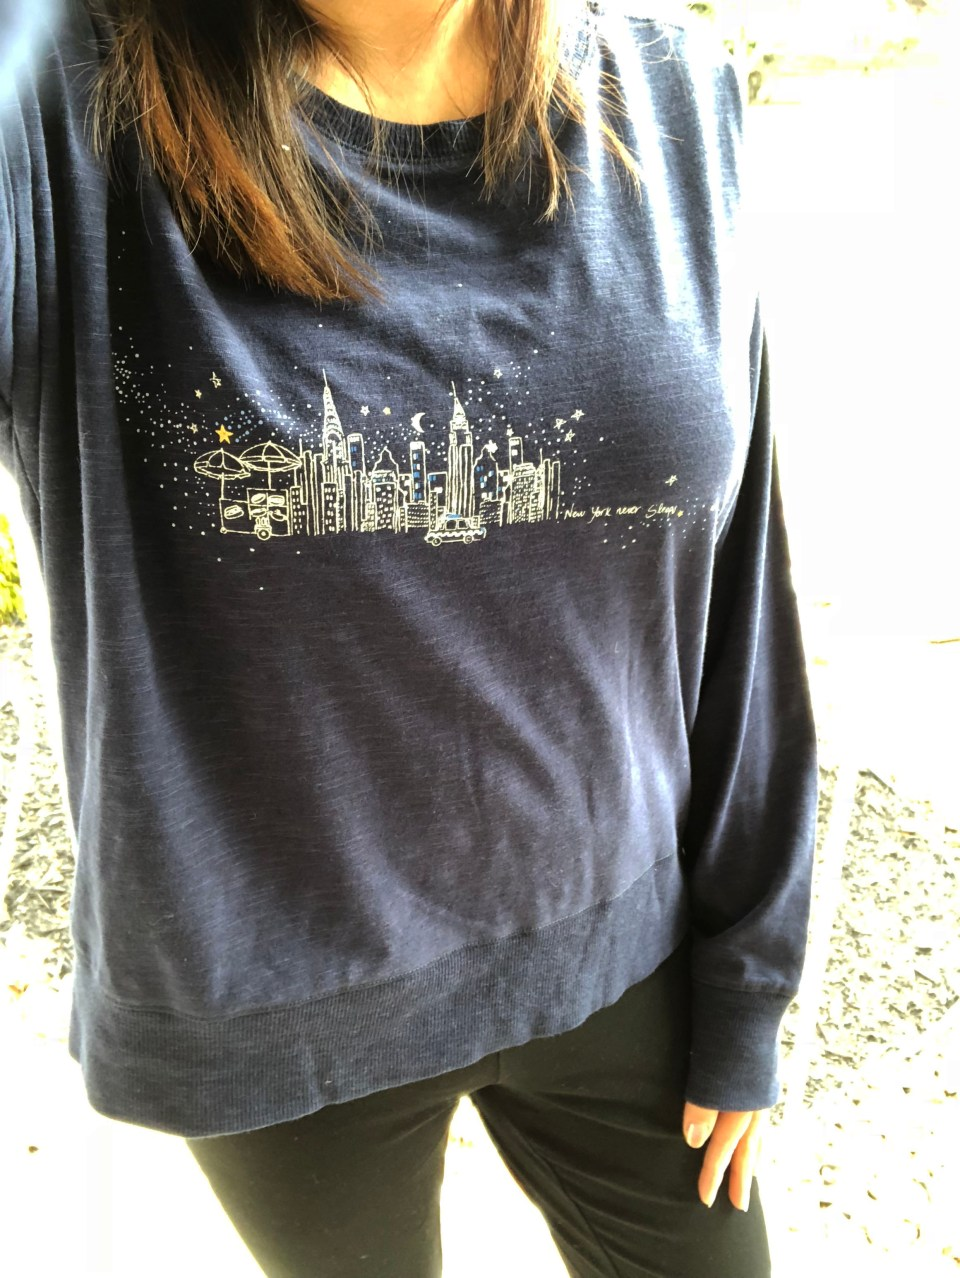 Cityscape Graphic Tee + Knit Nikes 10